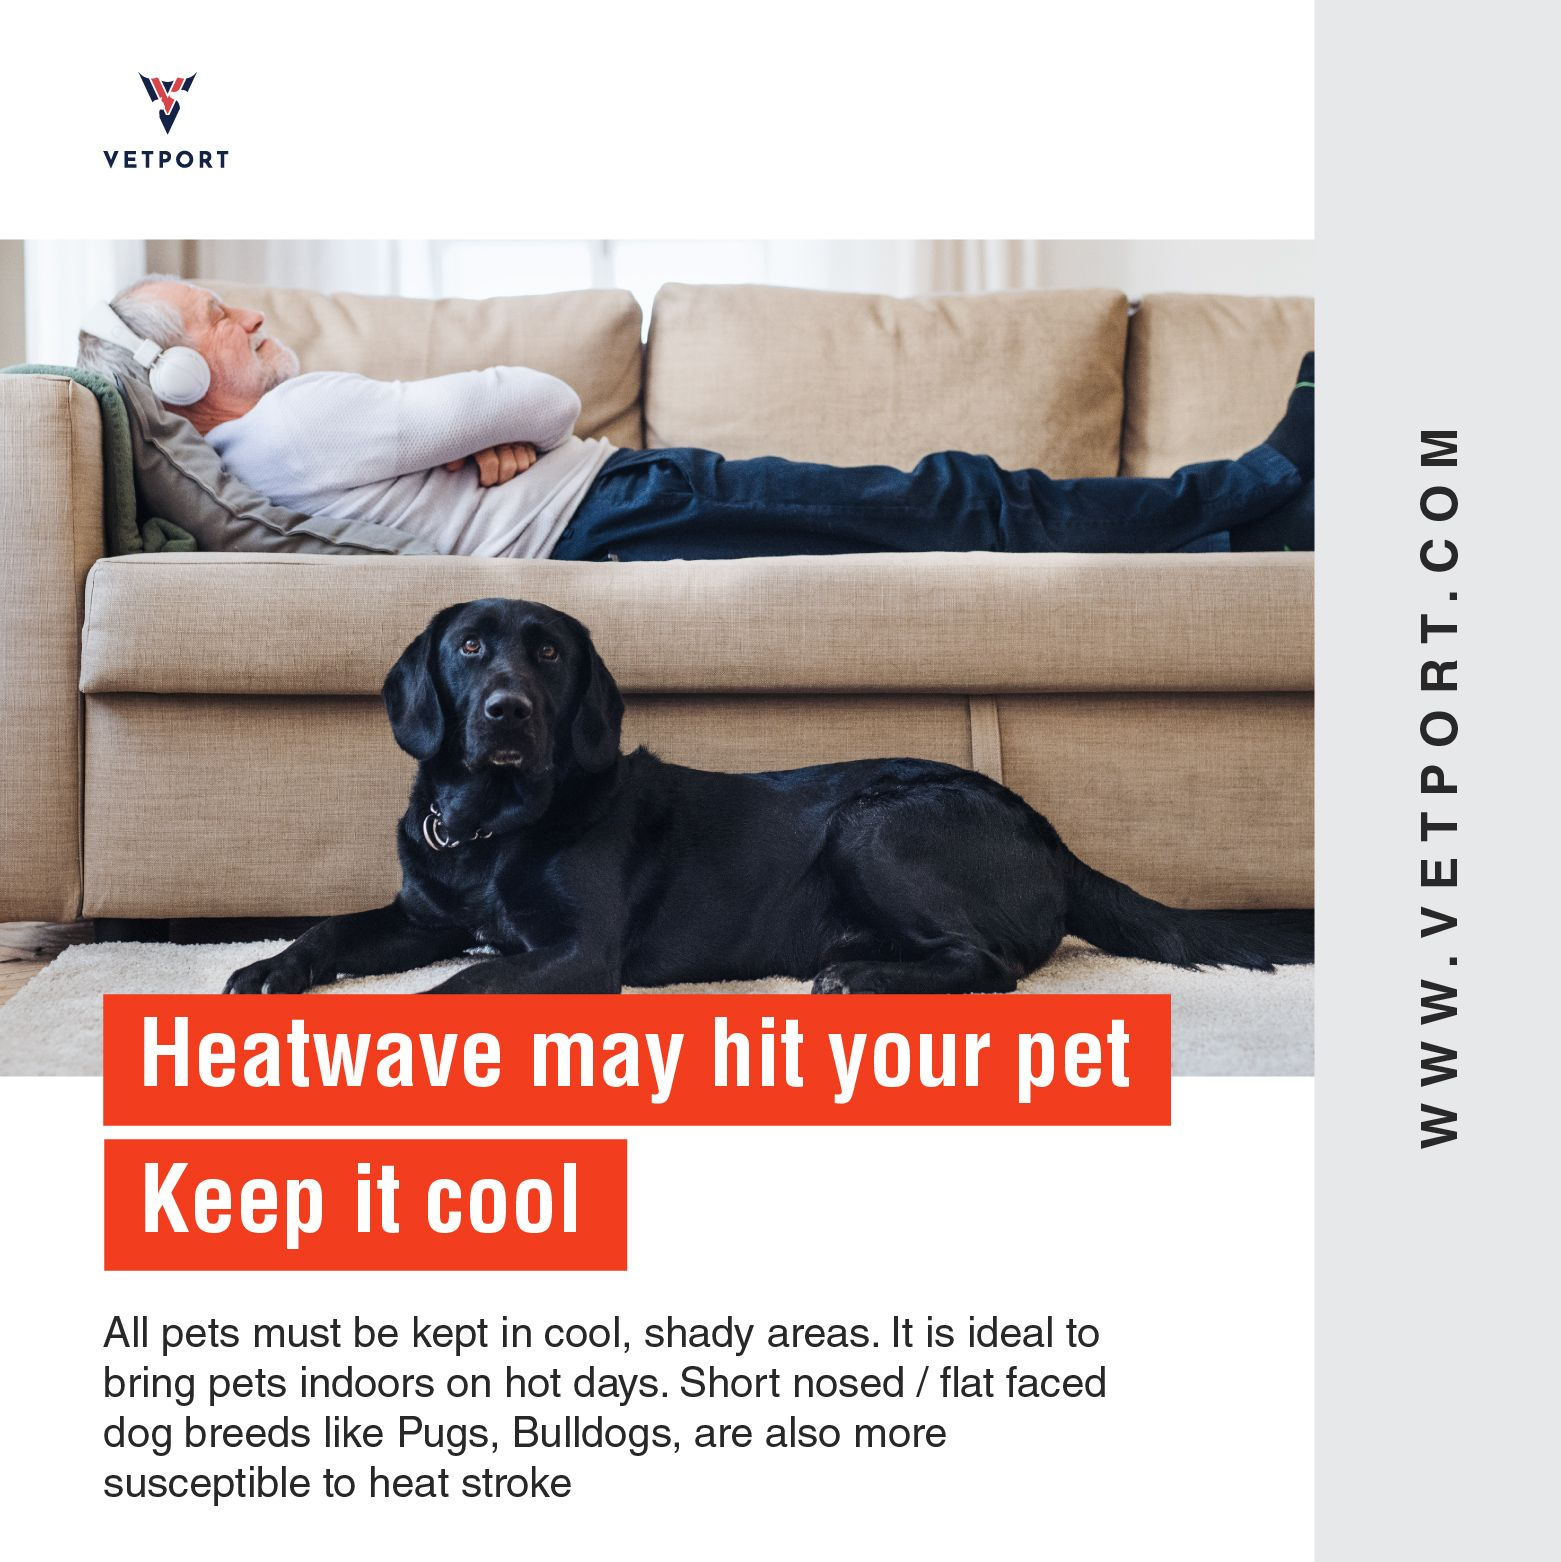 Heatwave May Hit Your Pet Keep It Cool Fridayfeeling Fridaythoughts Pets Vetport Veterinarian Veterinary Petcare Your Pet Flat Faced Dogs Dog Face